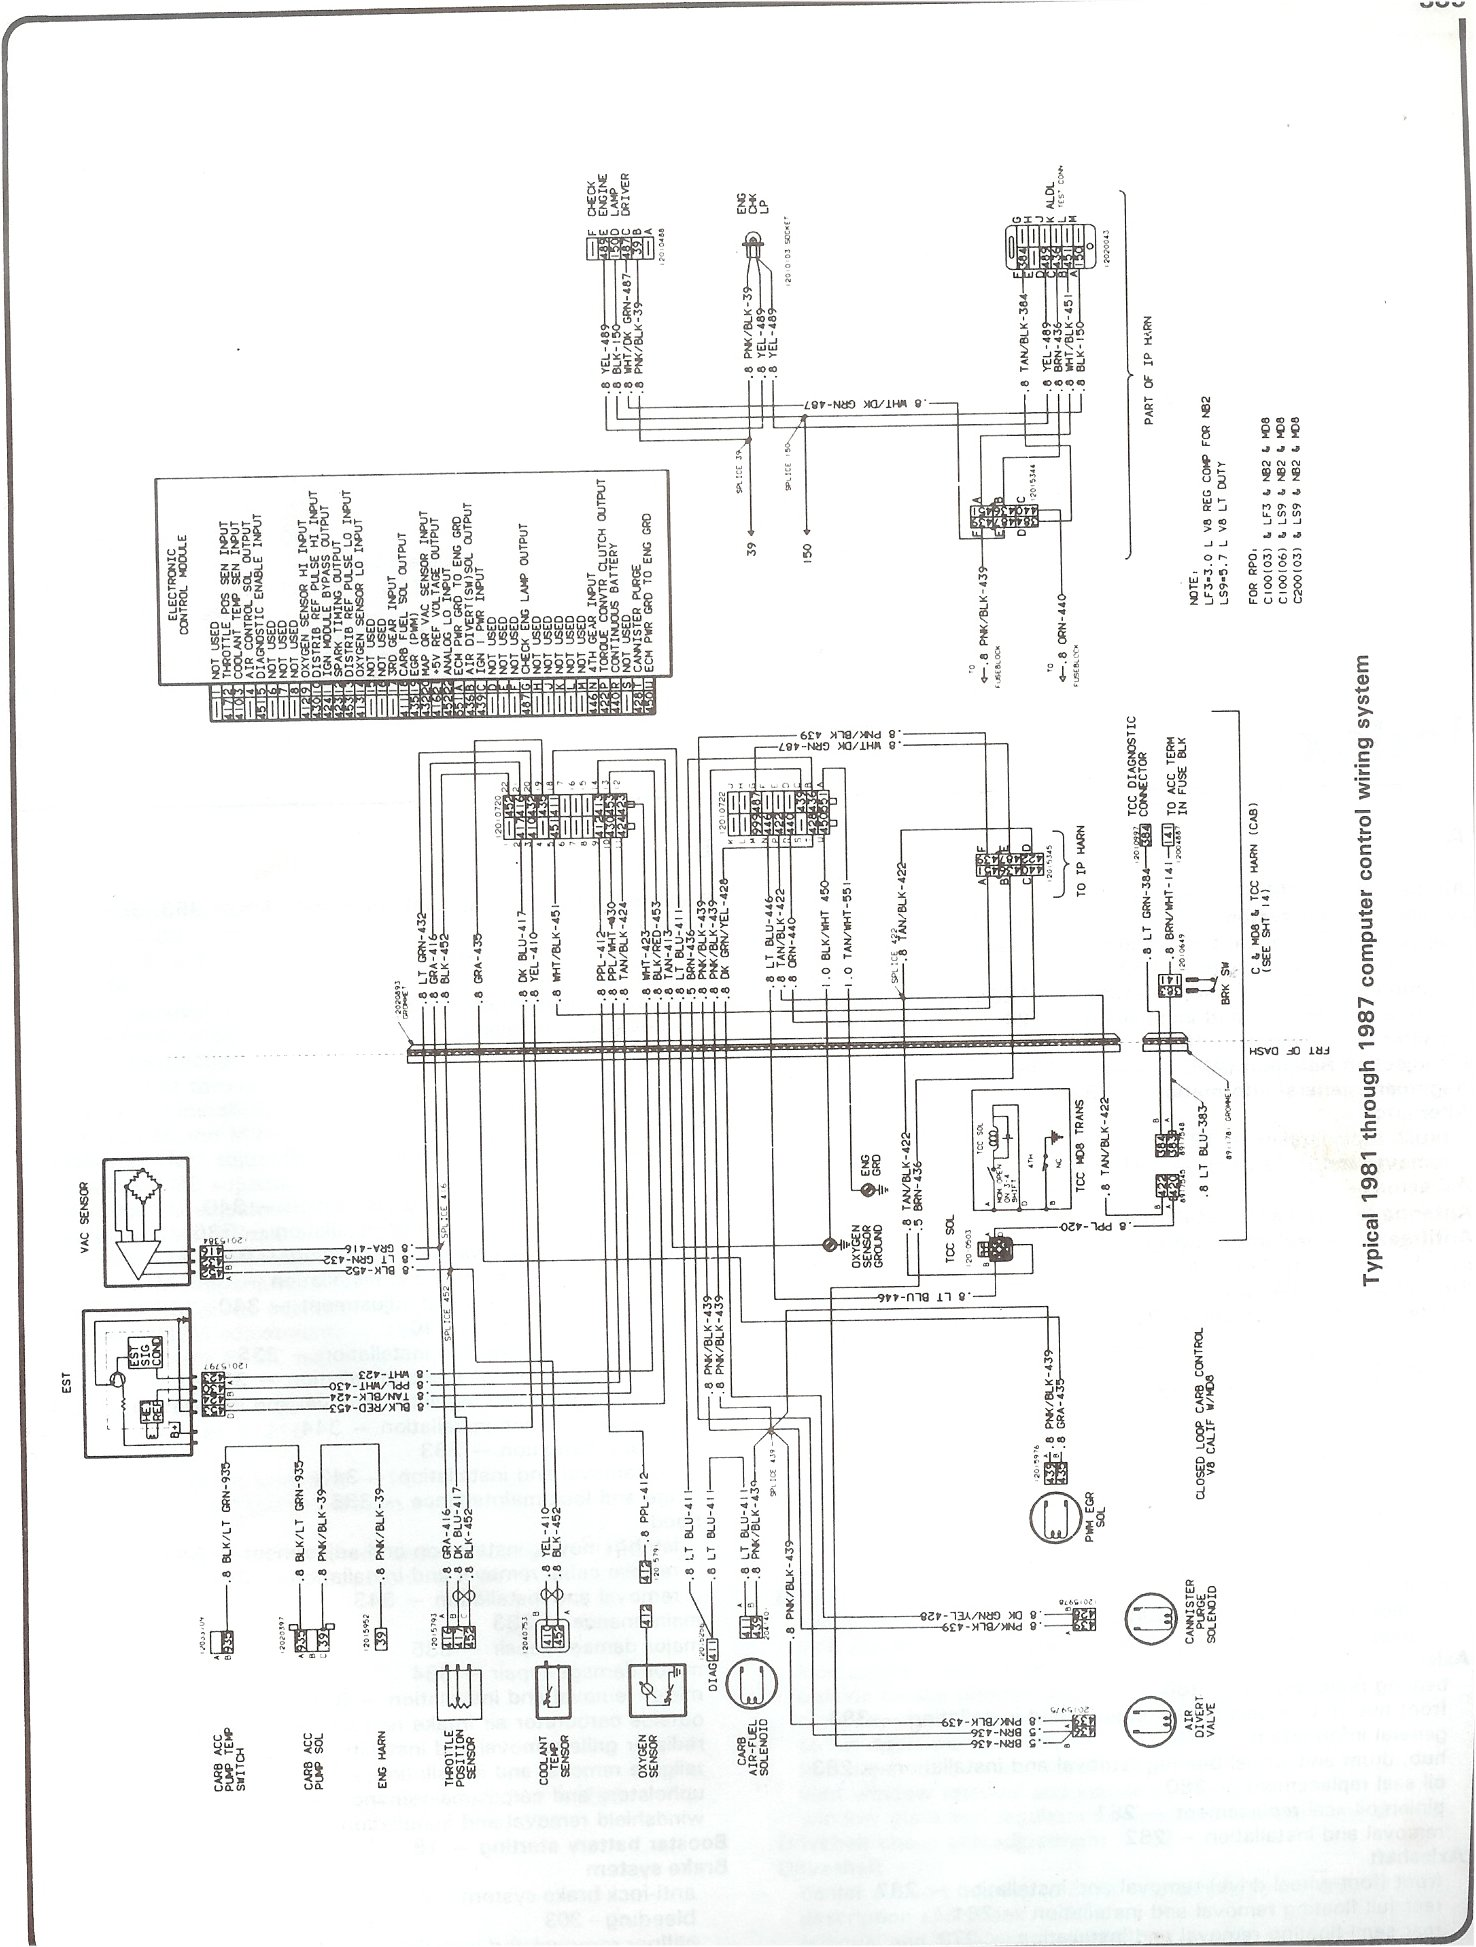 81 87_computer_control_wiring complete 73 87 wiring diagrams 1985 chevy truck wiring harness at bayanpartner.co